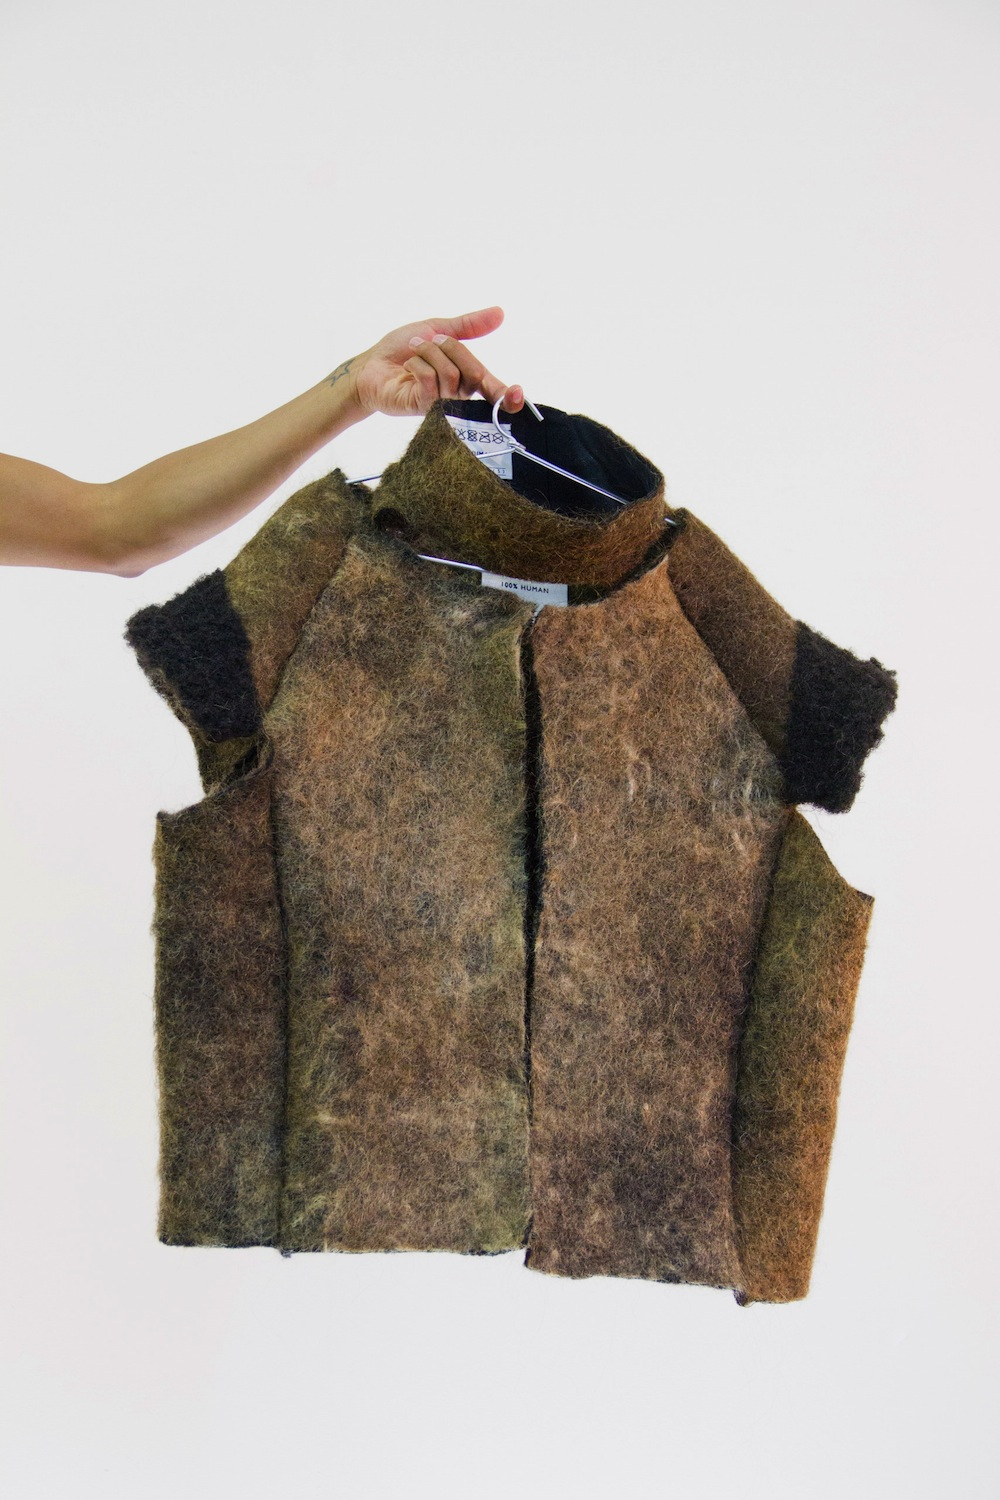 Eindhoven graduate designs clothes made out of human hair  Design Indaba